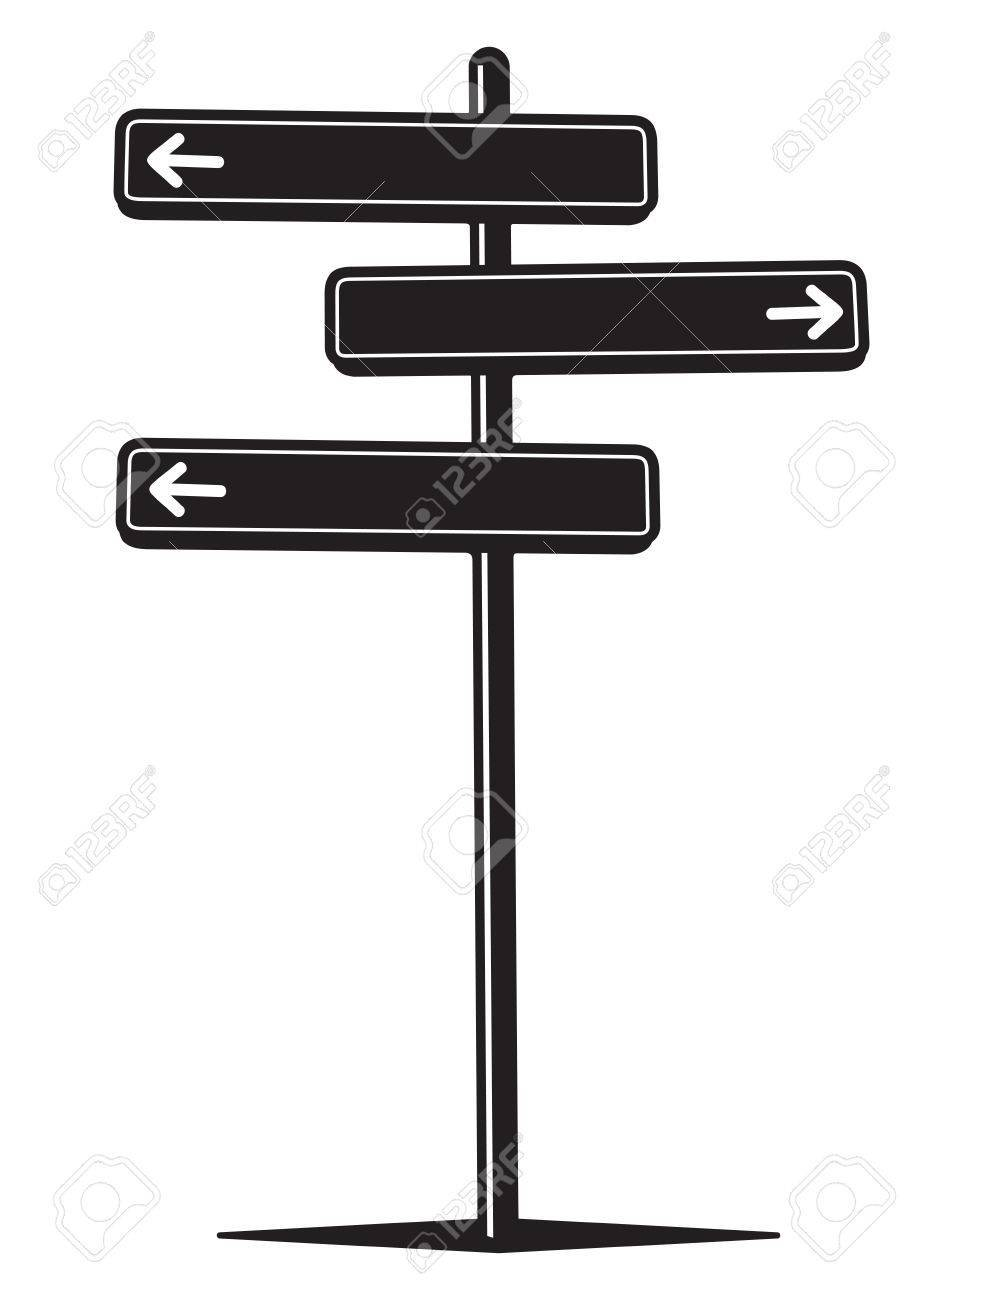 Clipart of a street sign black and white picture freeuse library Blank street sign clipart black and white 5 » Clipart Portal picture freeuse library